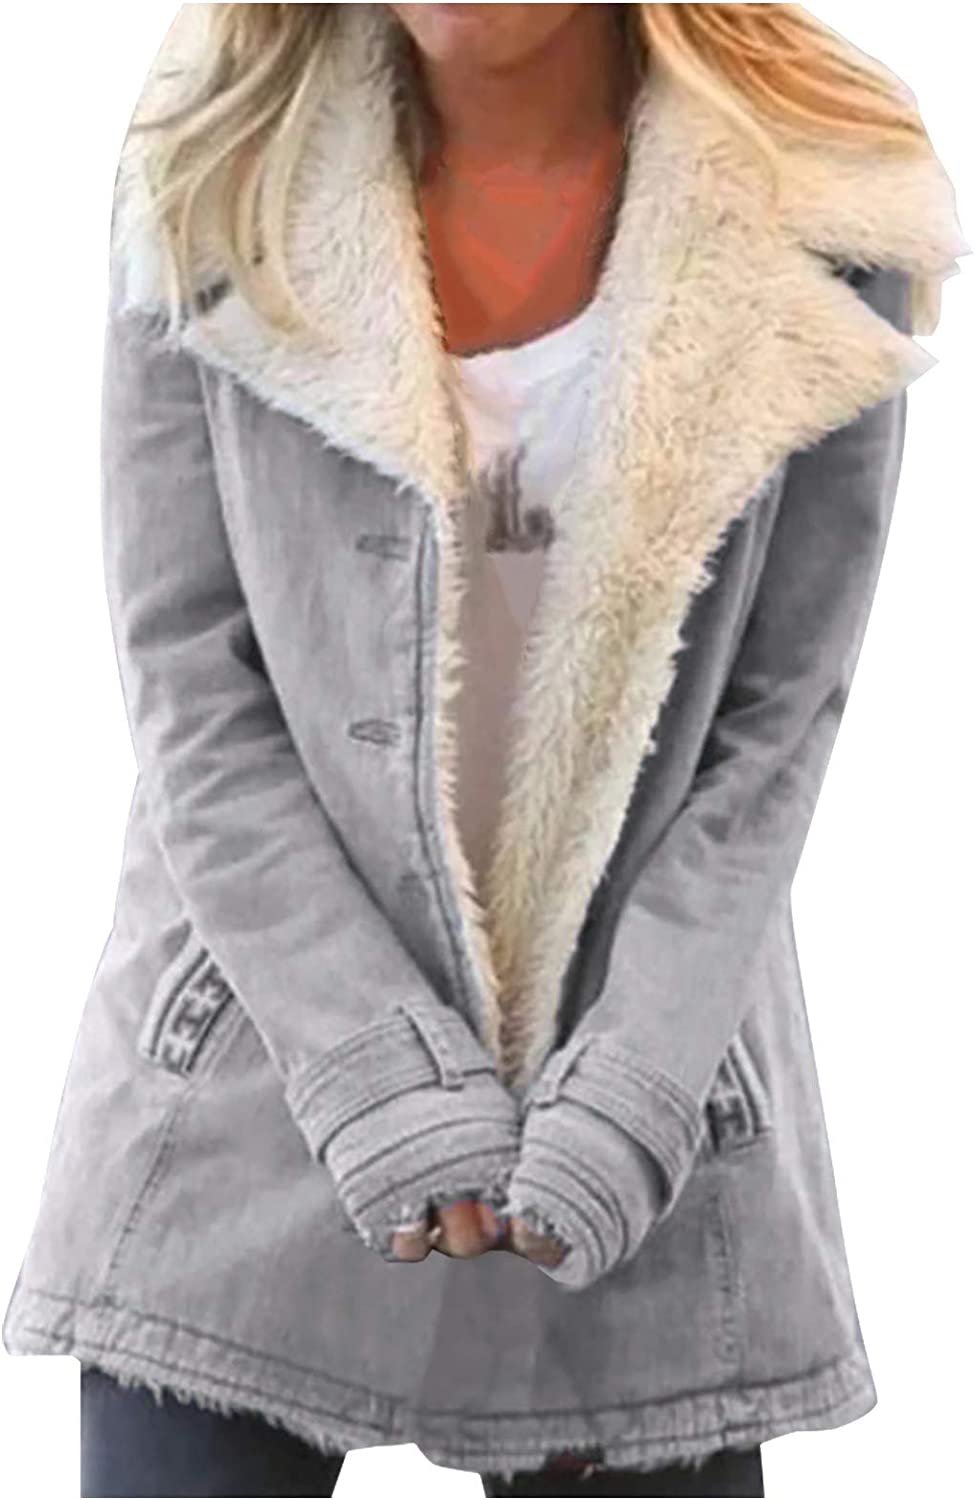 Smileyth favorite Women's Thick Warm Fleece Lapel Casual Jacket Industry No. 1 Slee Long